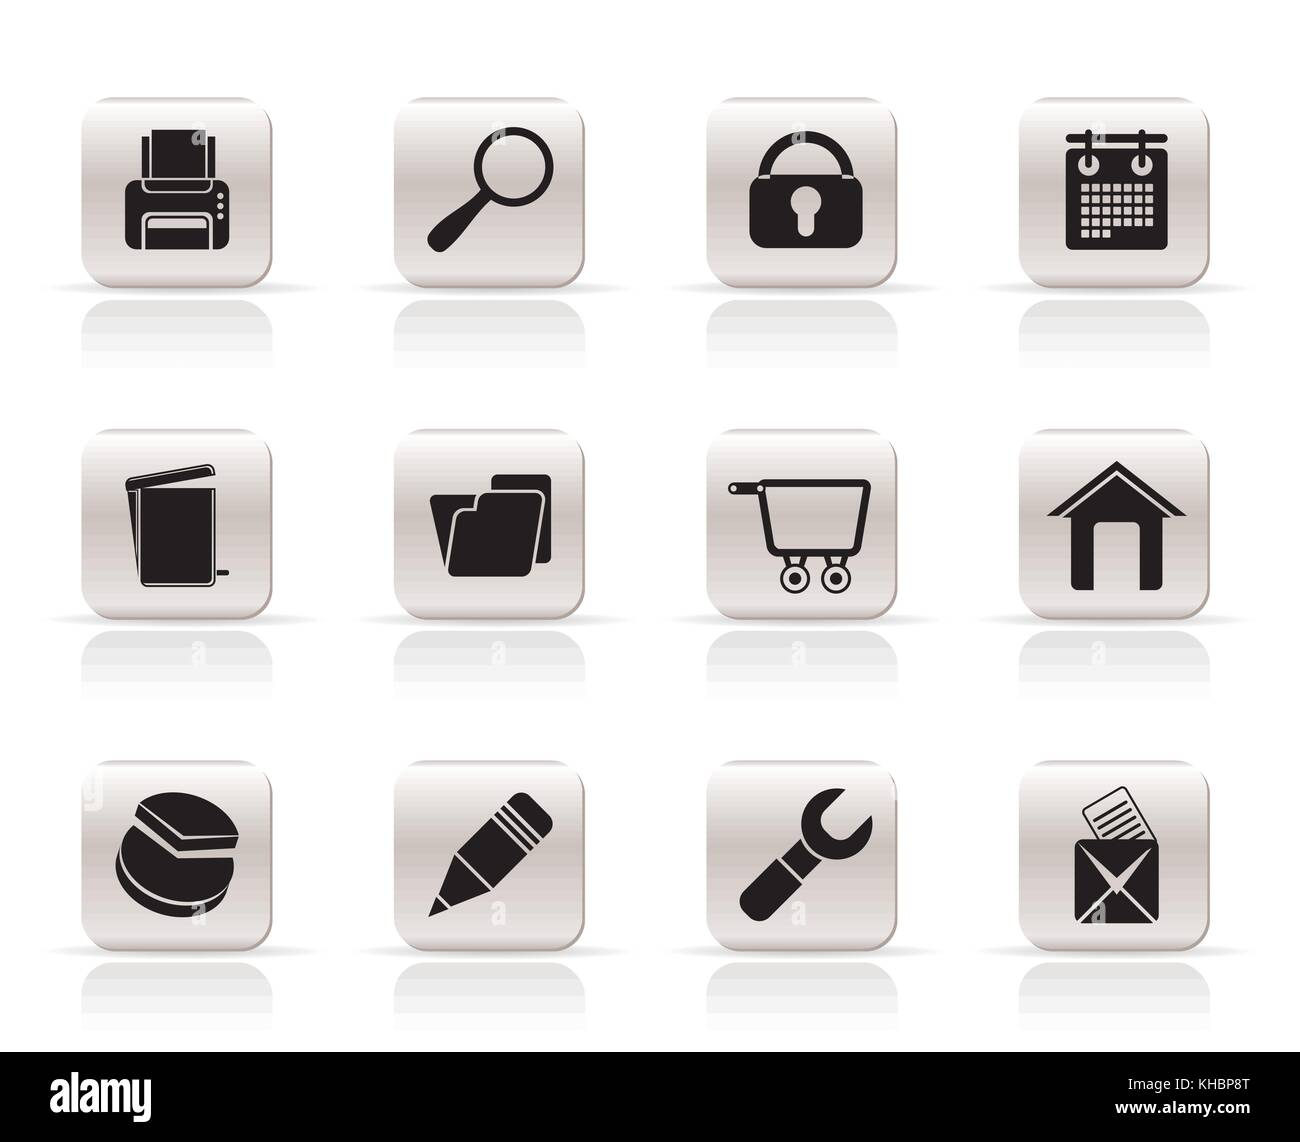 website, internet and computer icons - vector icon set - Stock Image